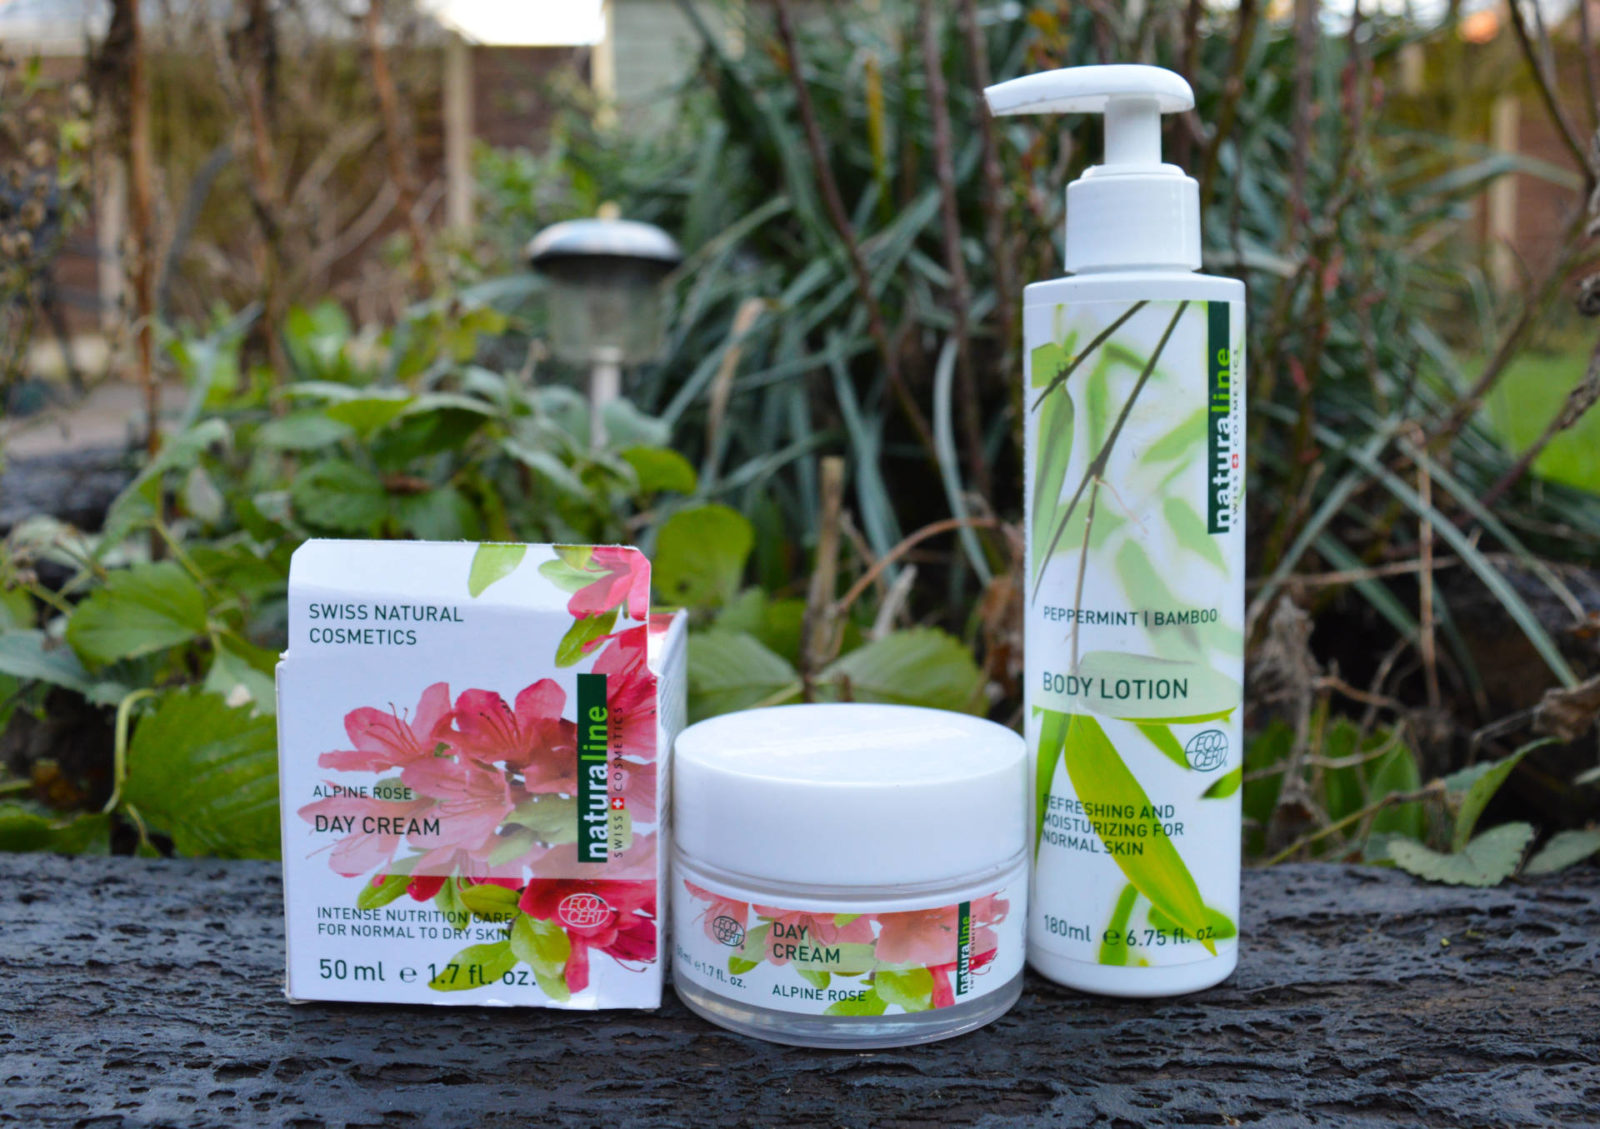 February Beauty Favourites , Naturaline Swiss Cosmetics Alpine Rose Day Cream Peppermint Bamboo Body Lotion